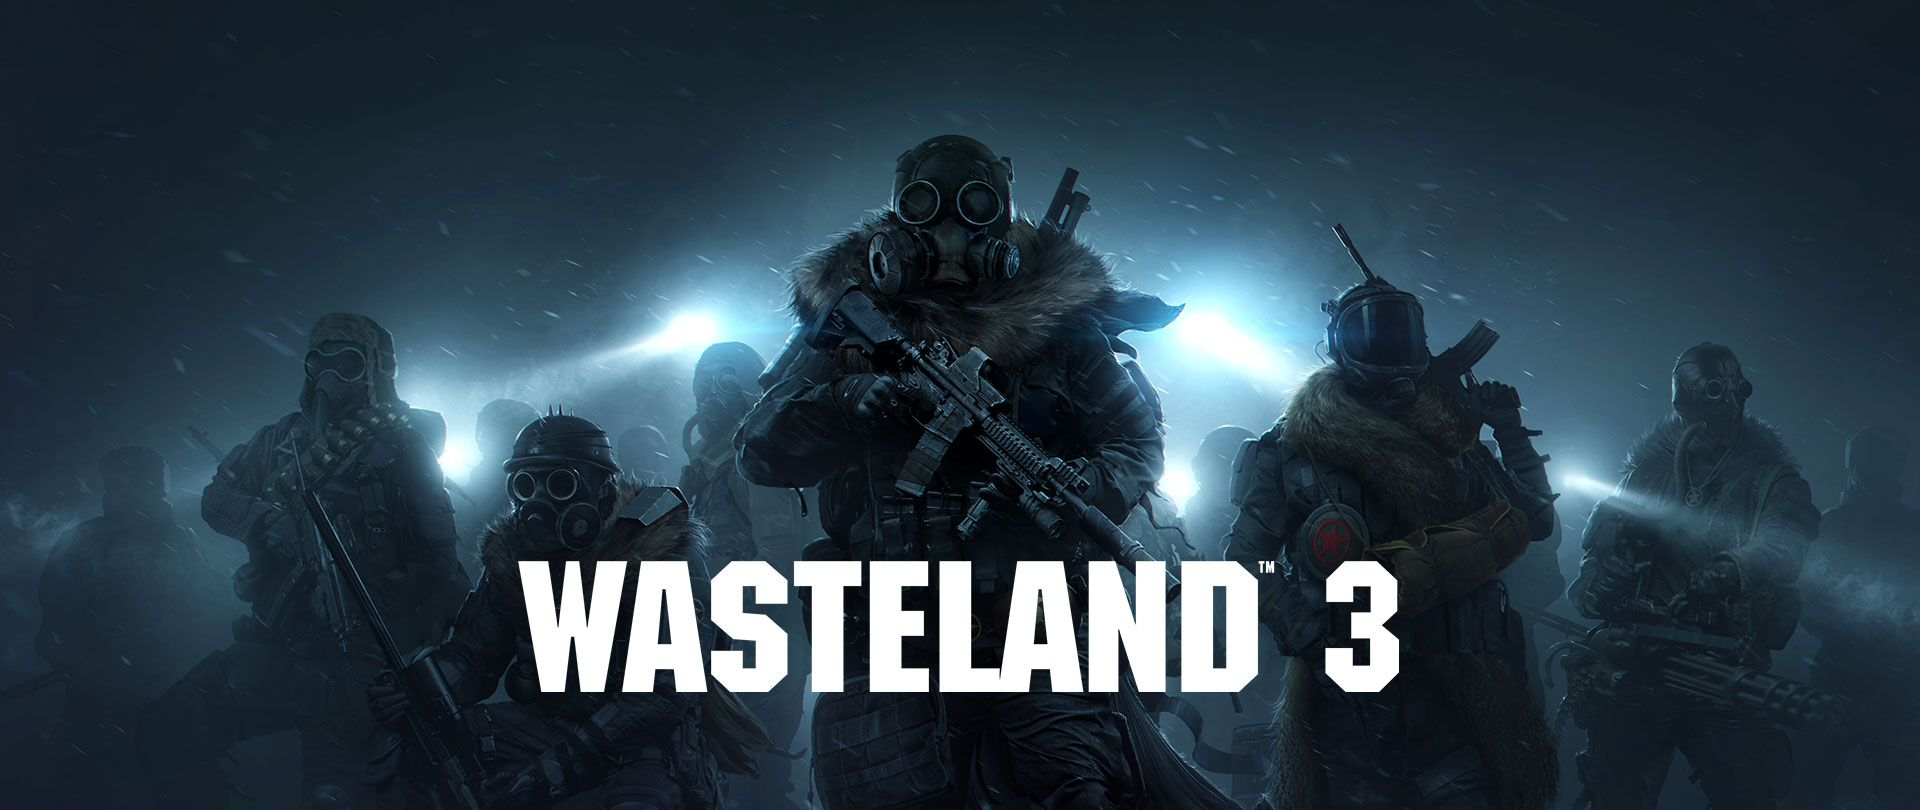 Wasteland 3 in 2020 Pax east, Xbox one, Bandai namco